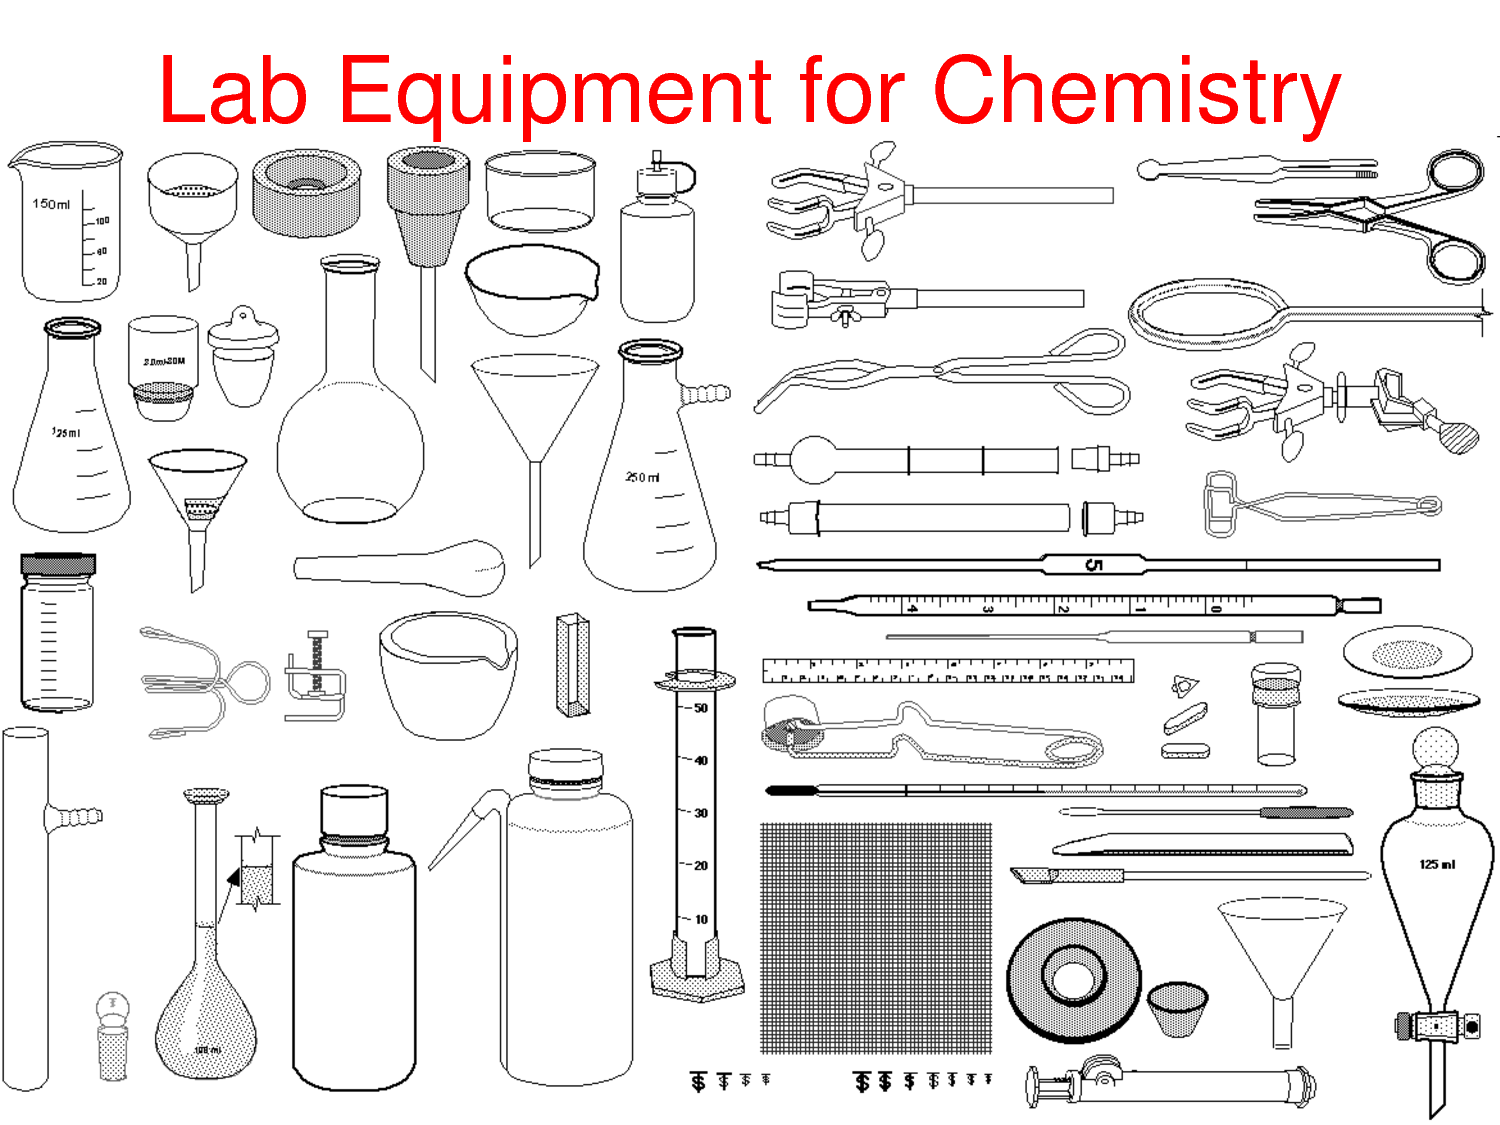 Printables Biology Laboratory Equipment Kelseylandsgaard – Science Lab Equipment Worksheet